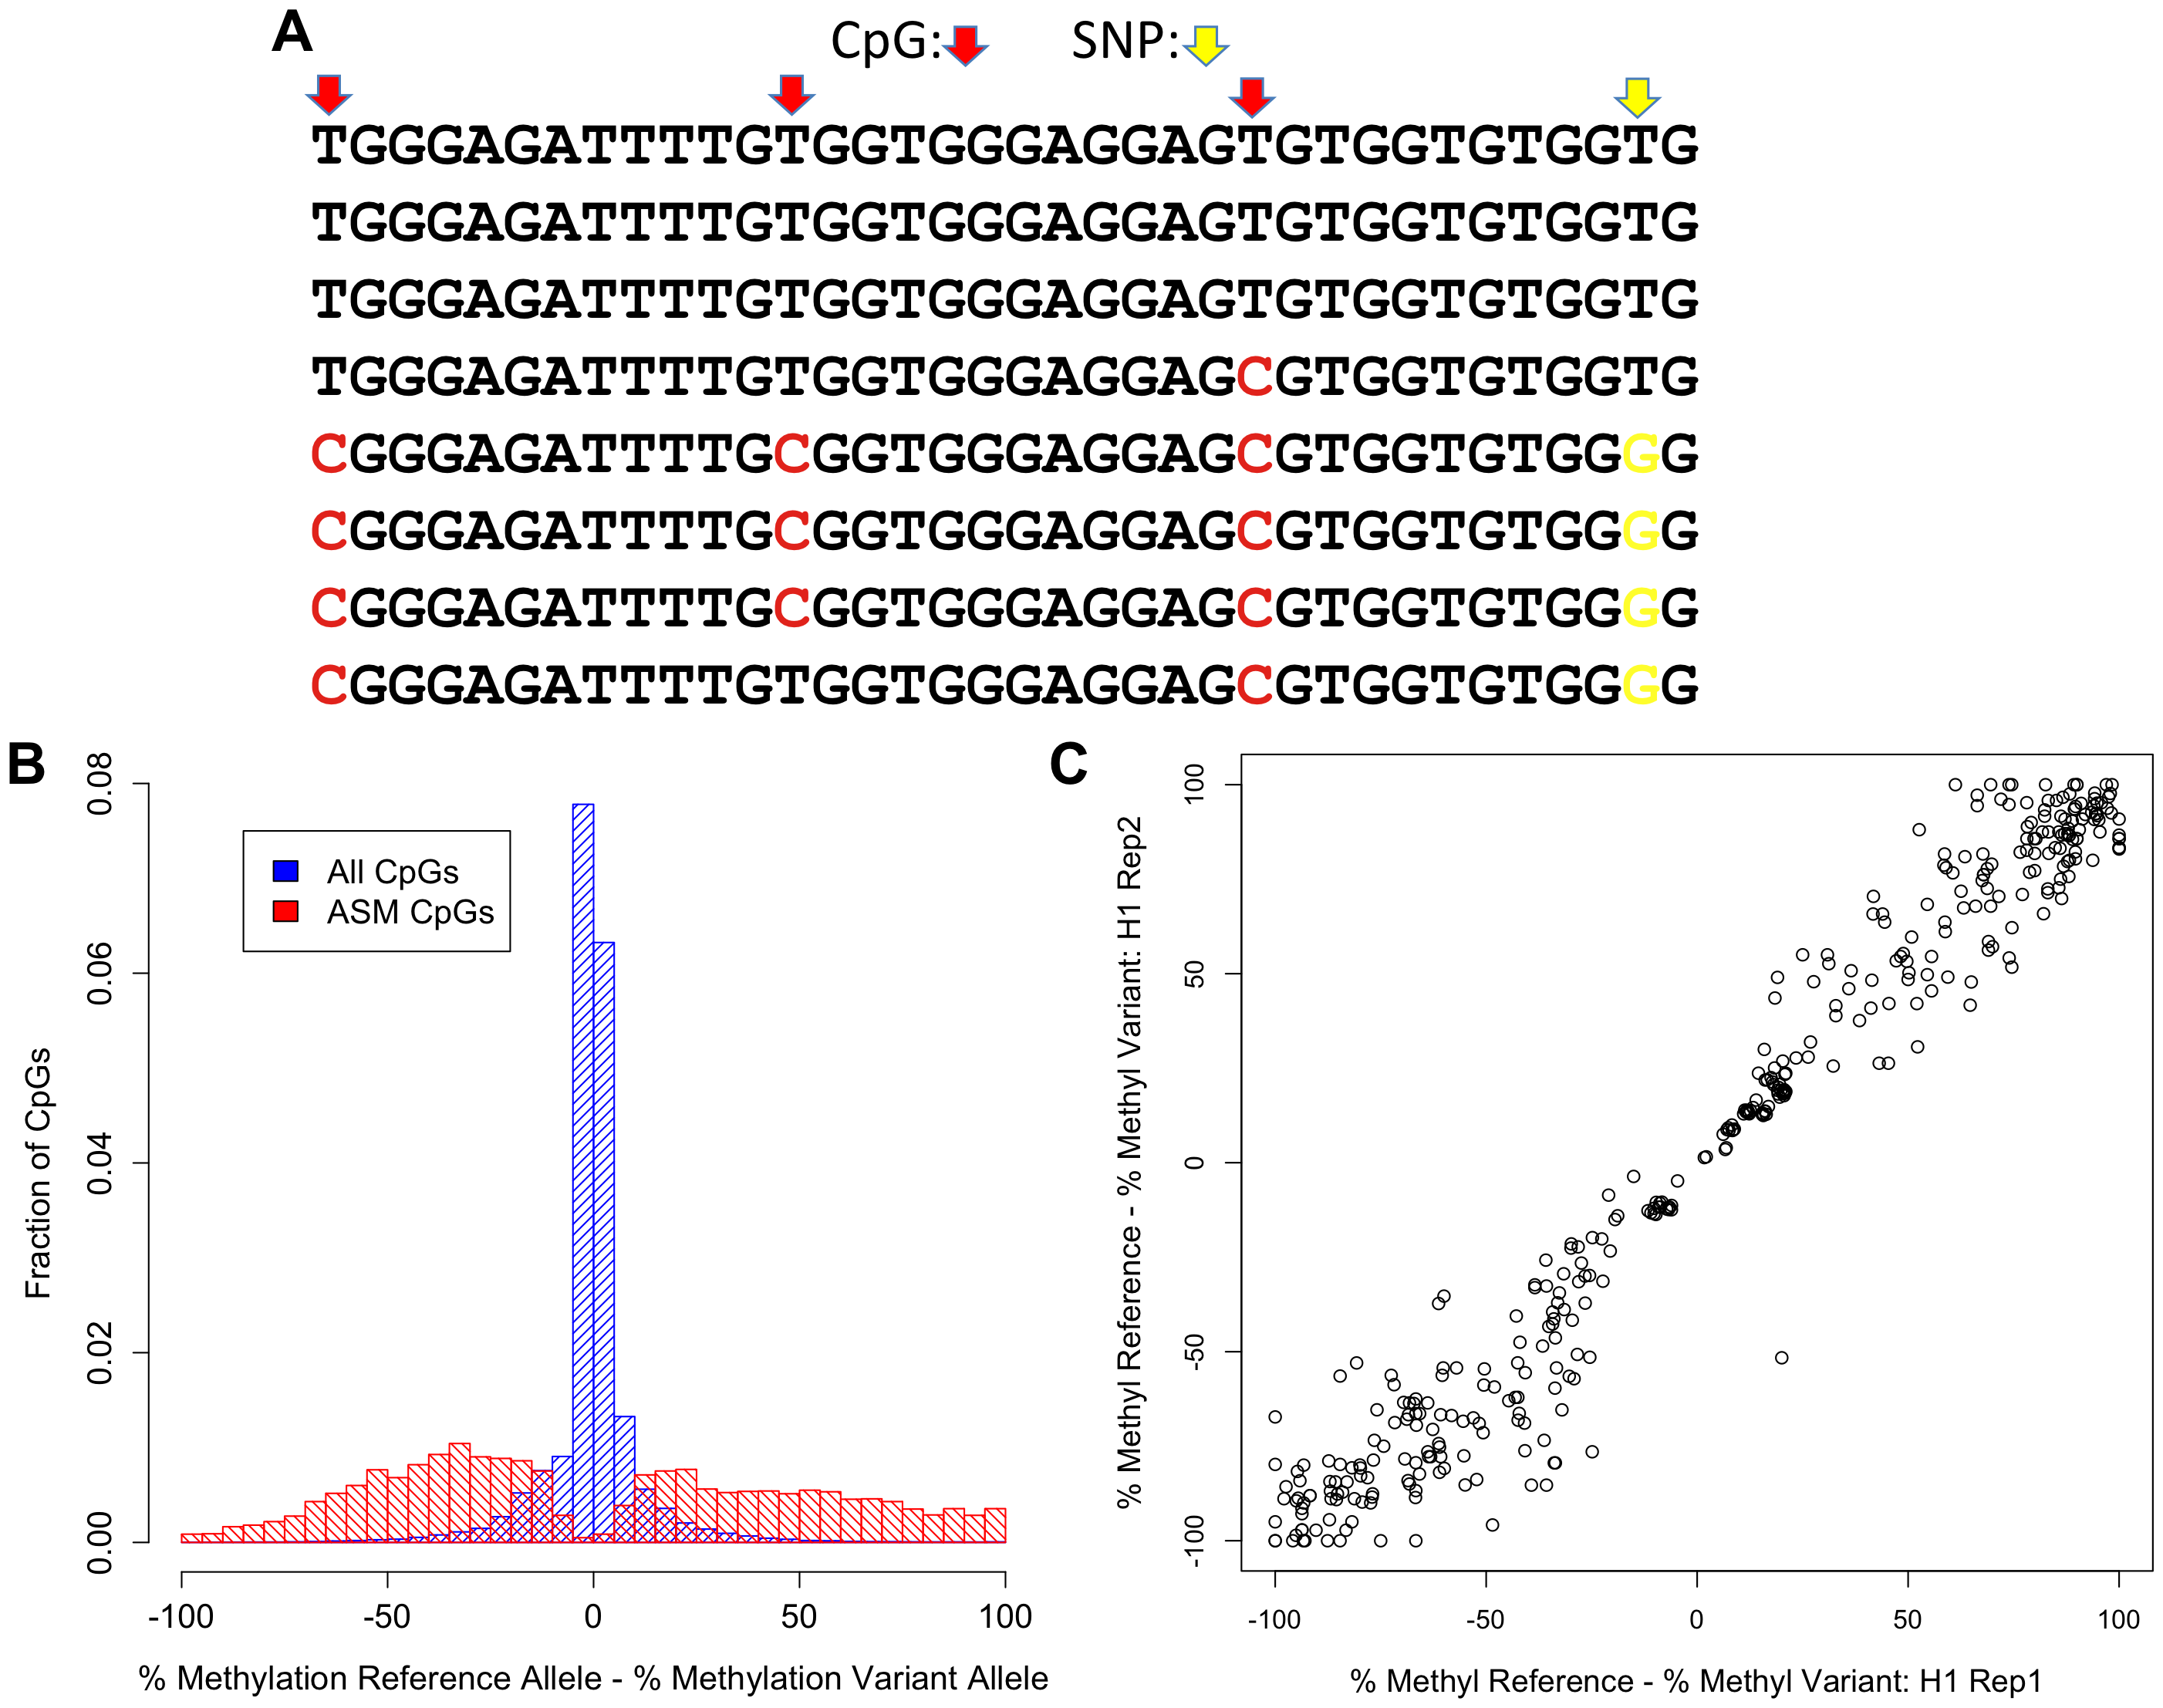 Discovery of ASM by reduced representation bisulfite sequencing.